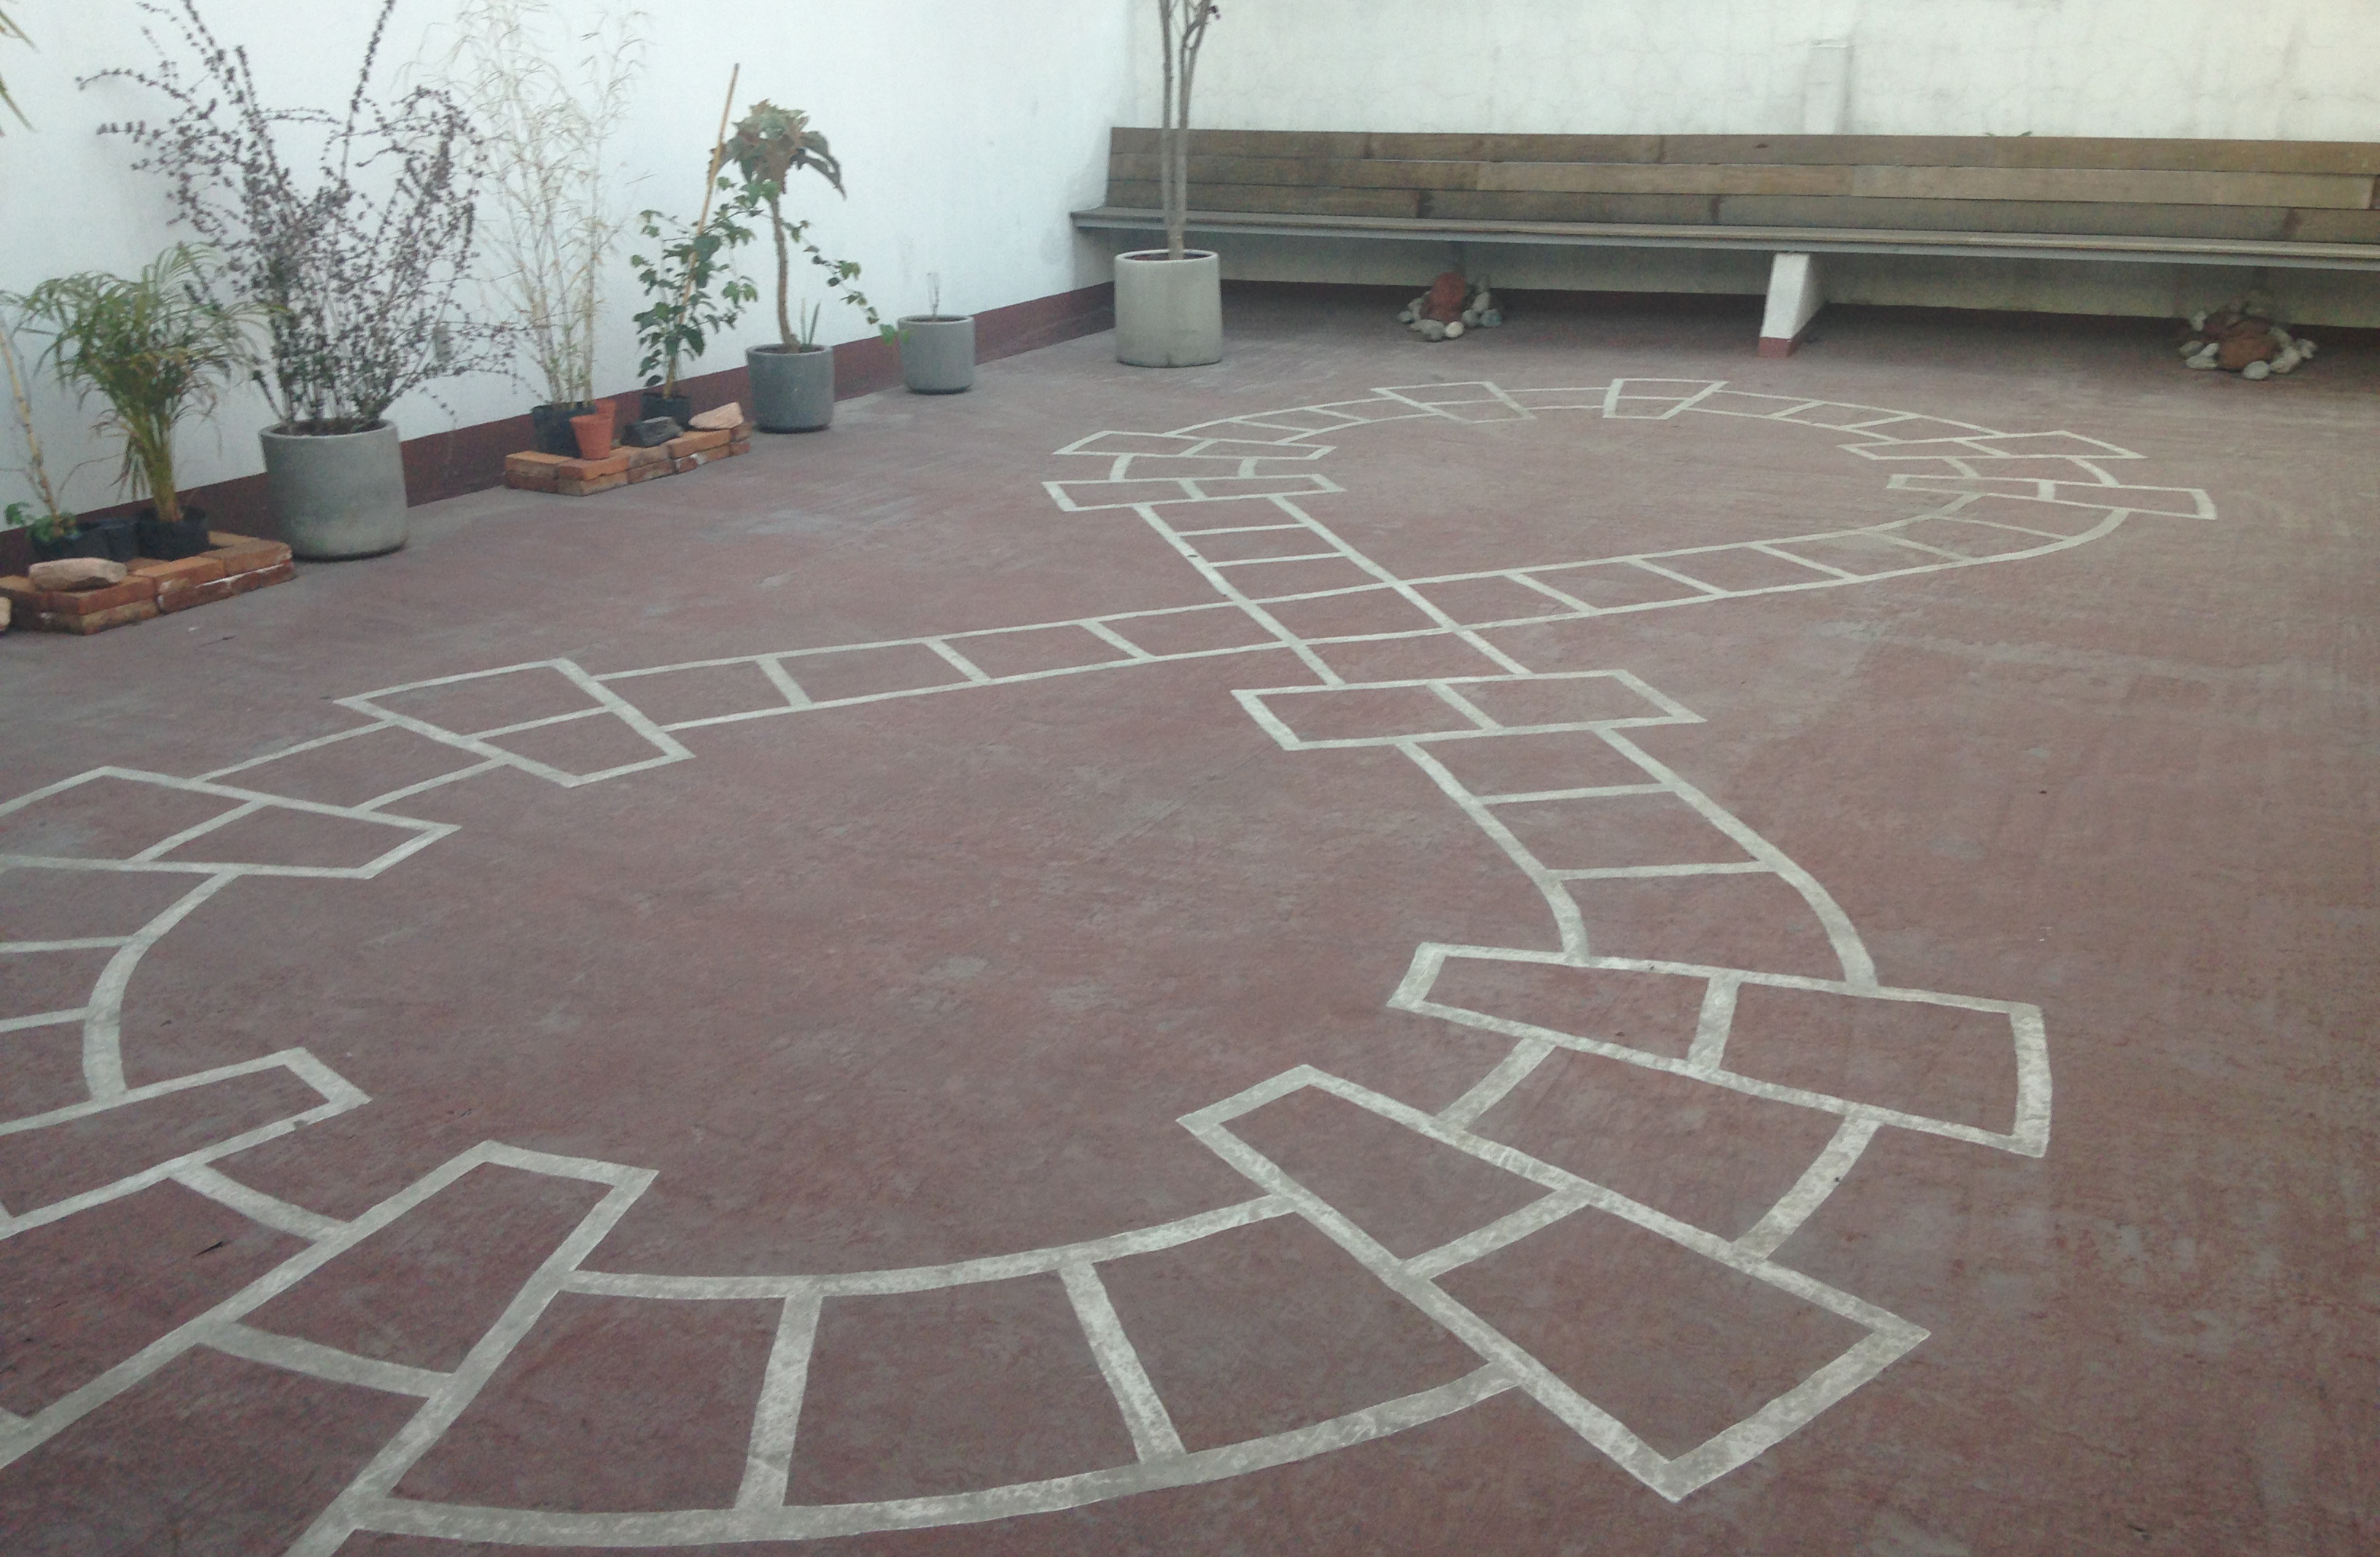 mexico-hopscotch.jpg